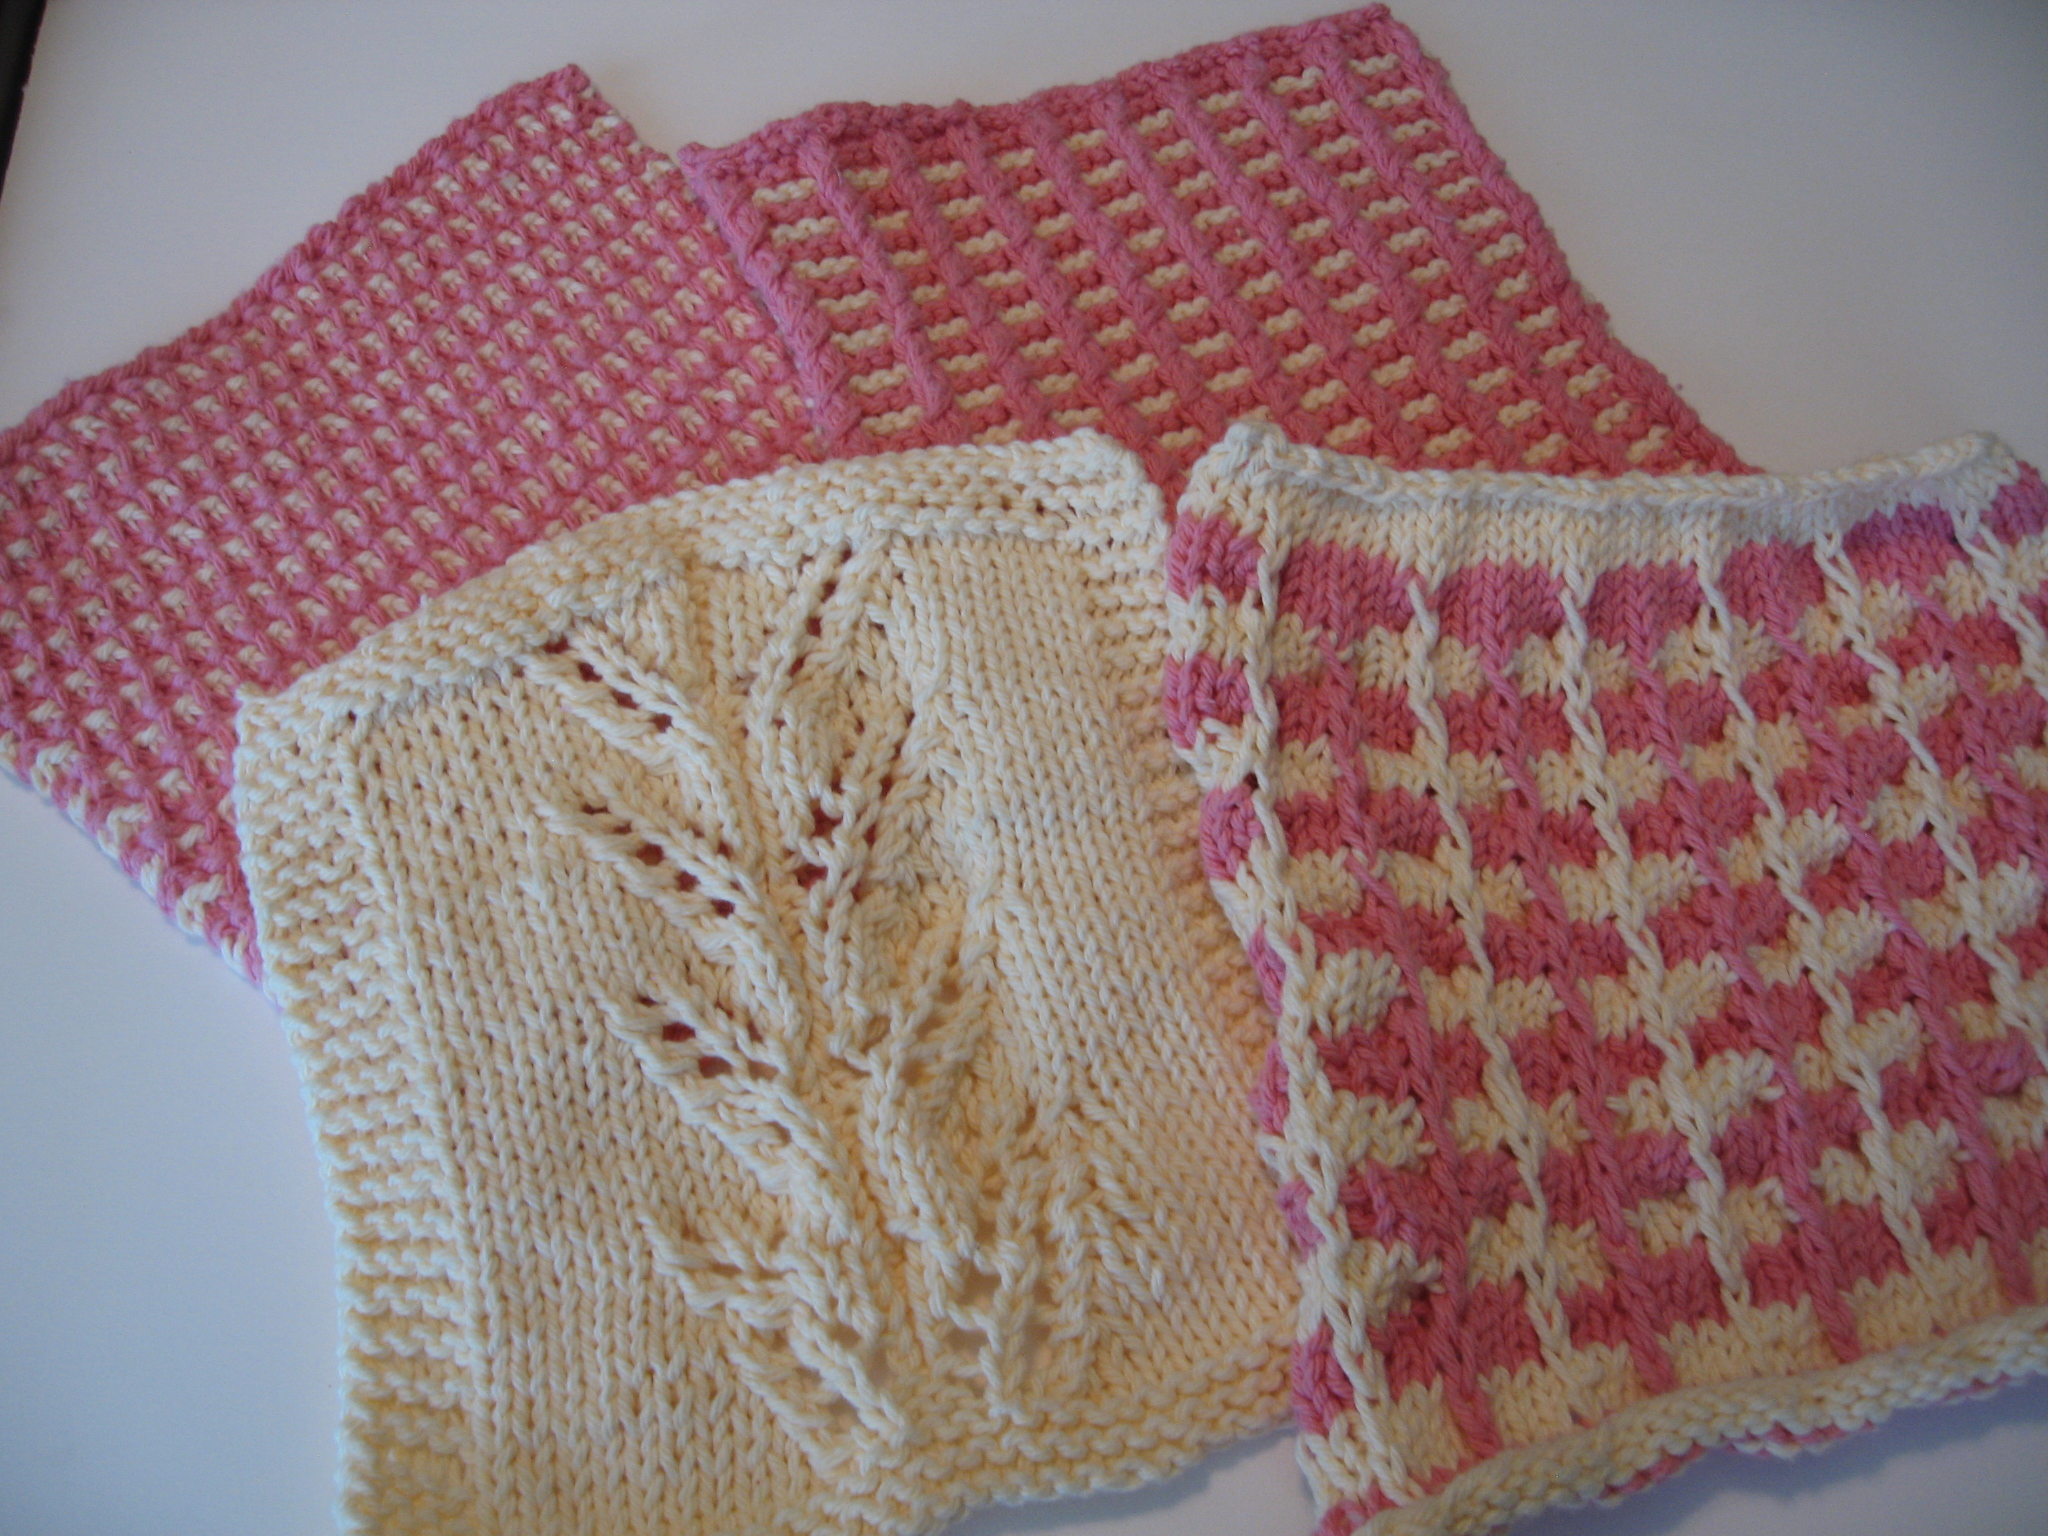 Knitting Techniques And Patterns : Knitting washclothes using for color techniques